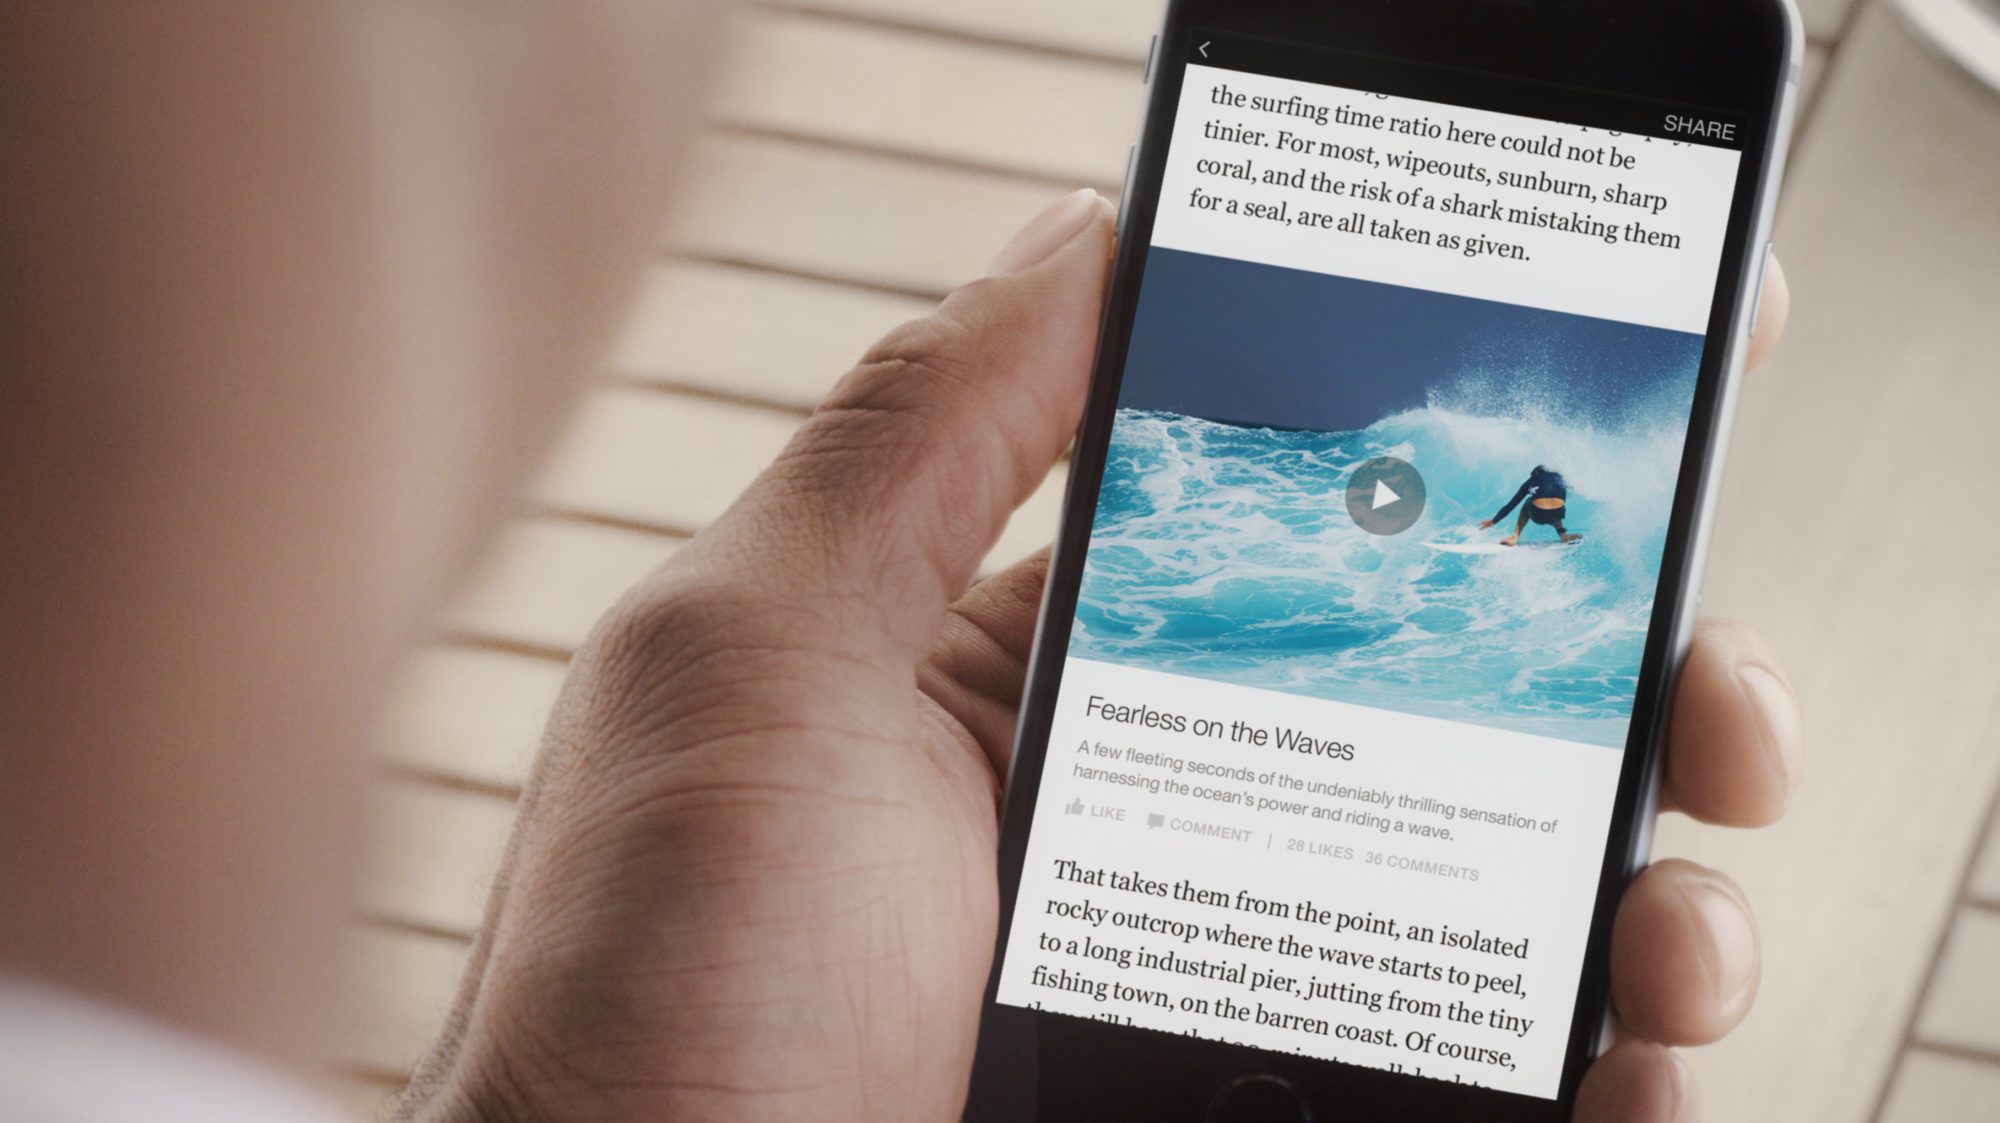 Still of a guy holding a phone, reading an article on surfing.